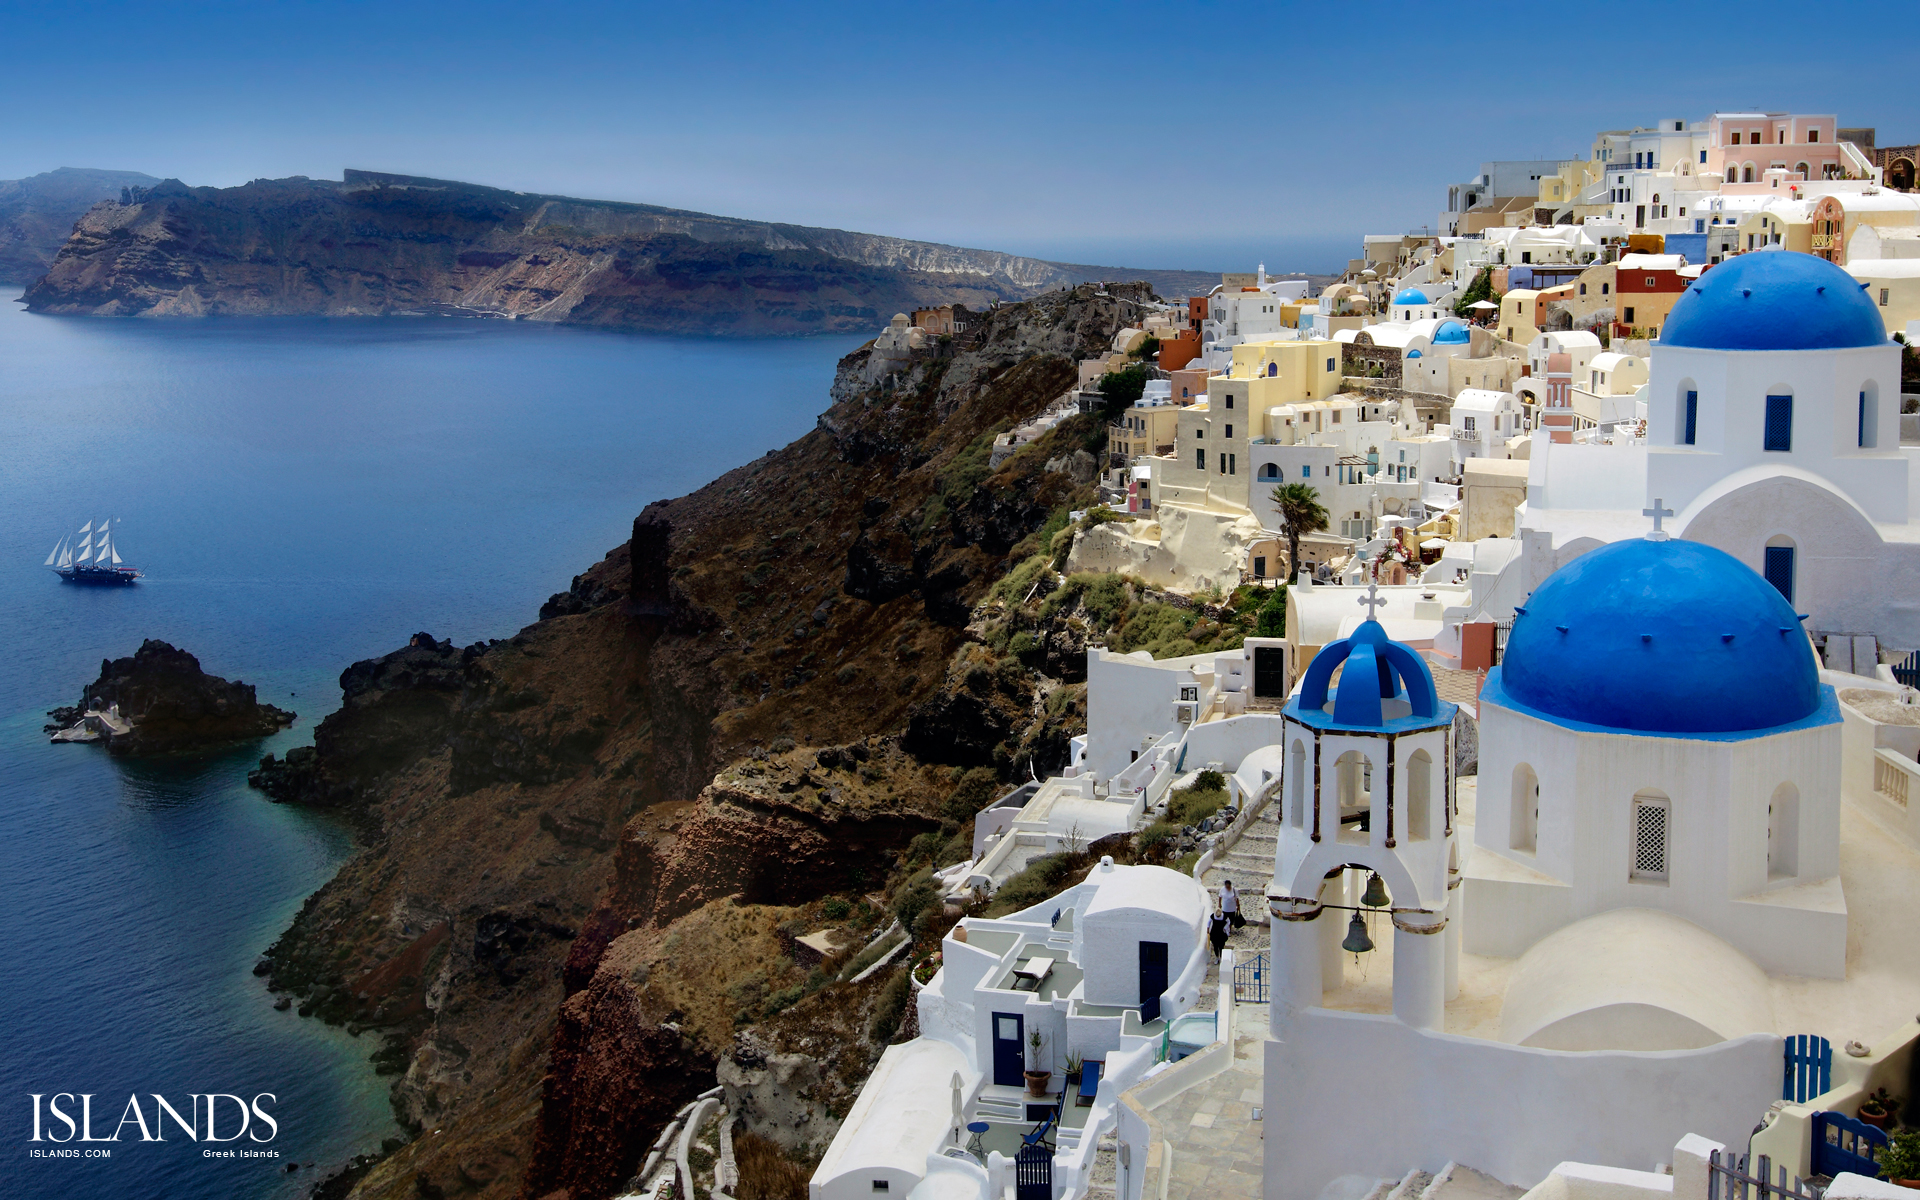 Santorini Wallpaper Romantic HD Wallpaper Background Images 1920x1200